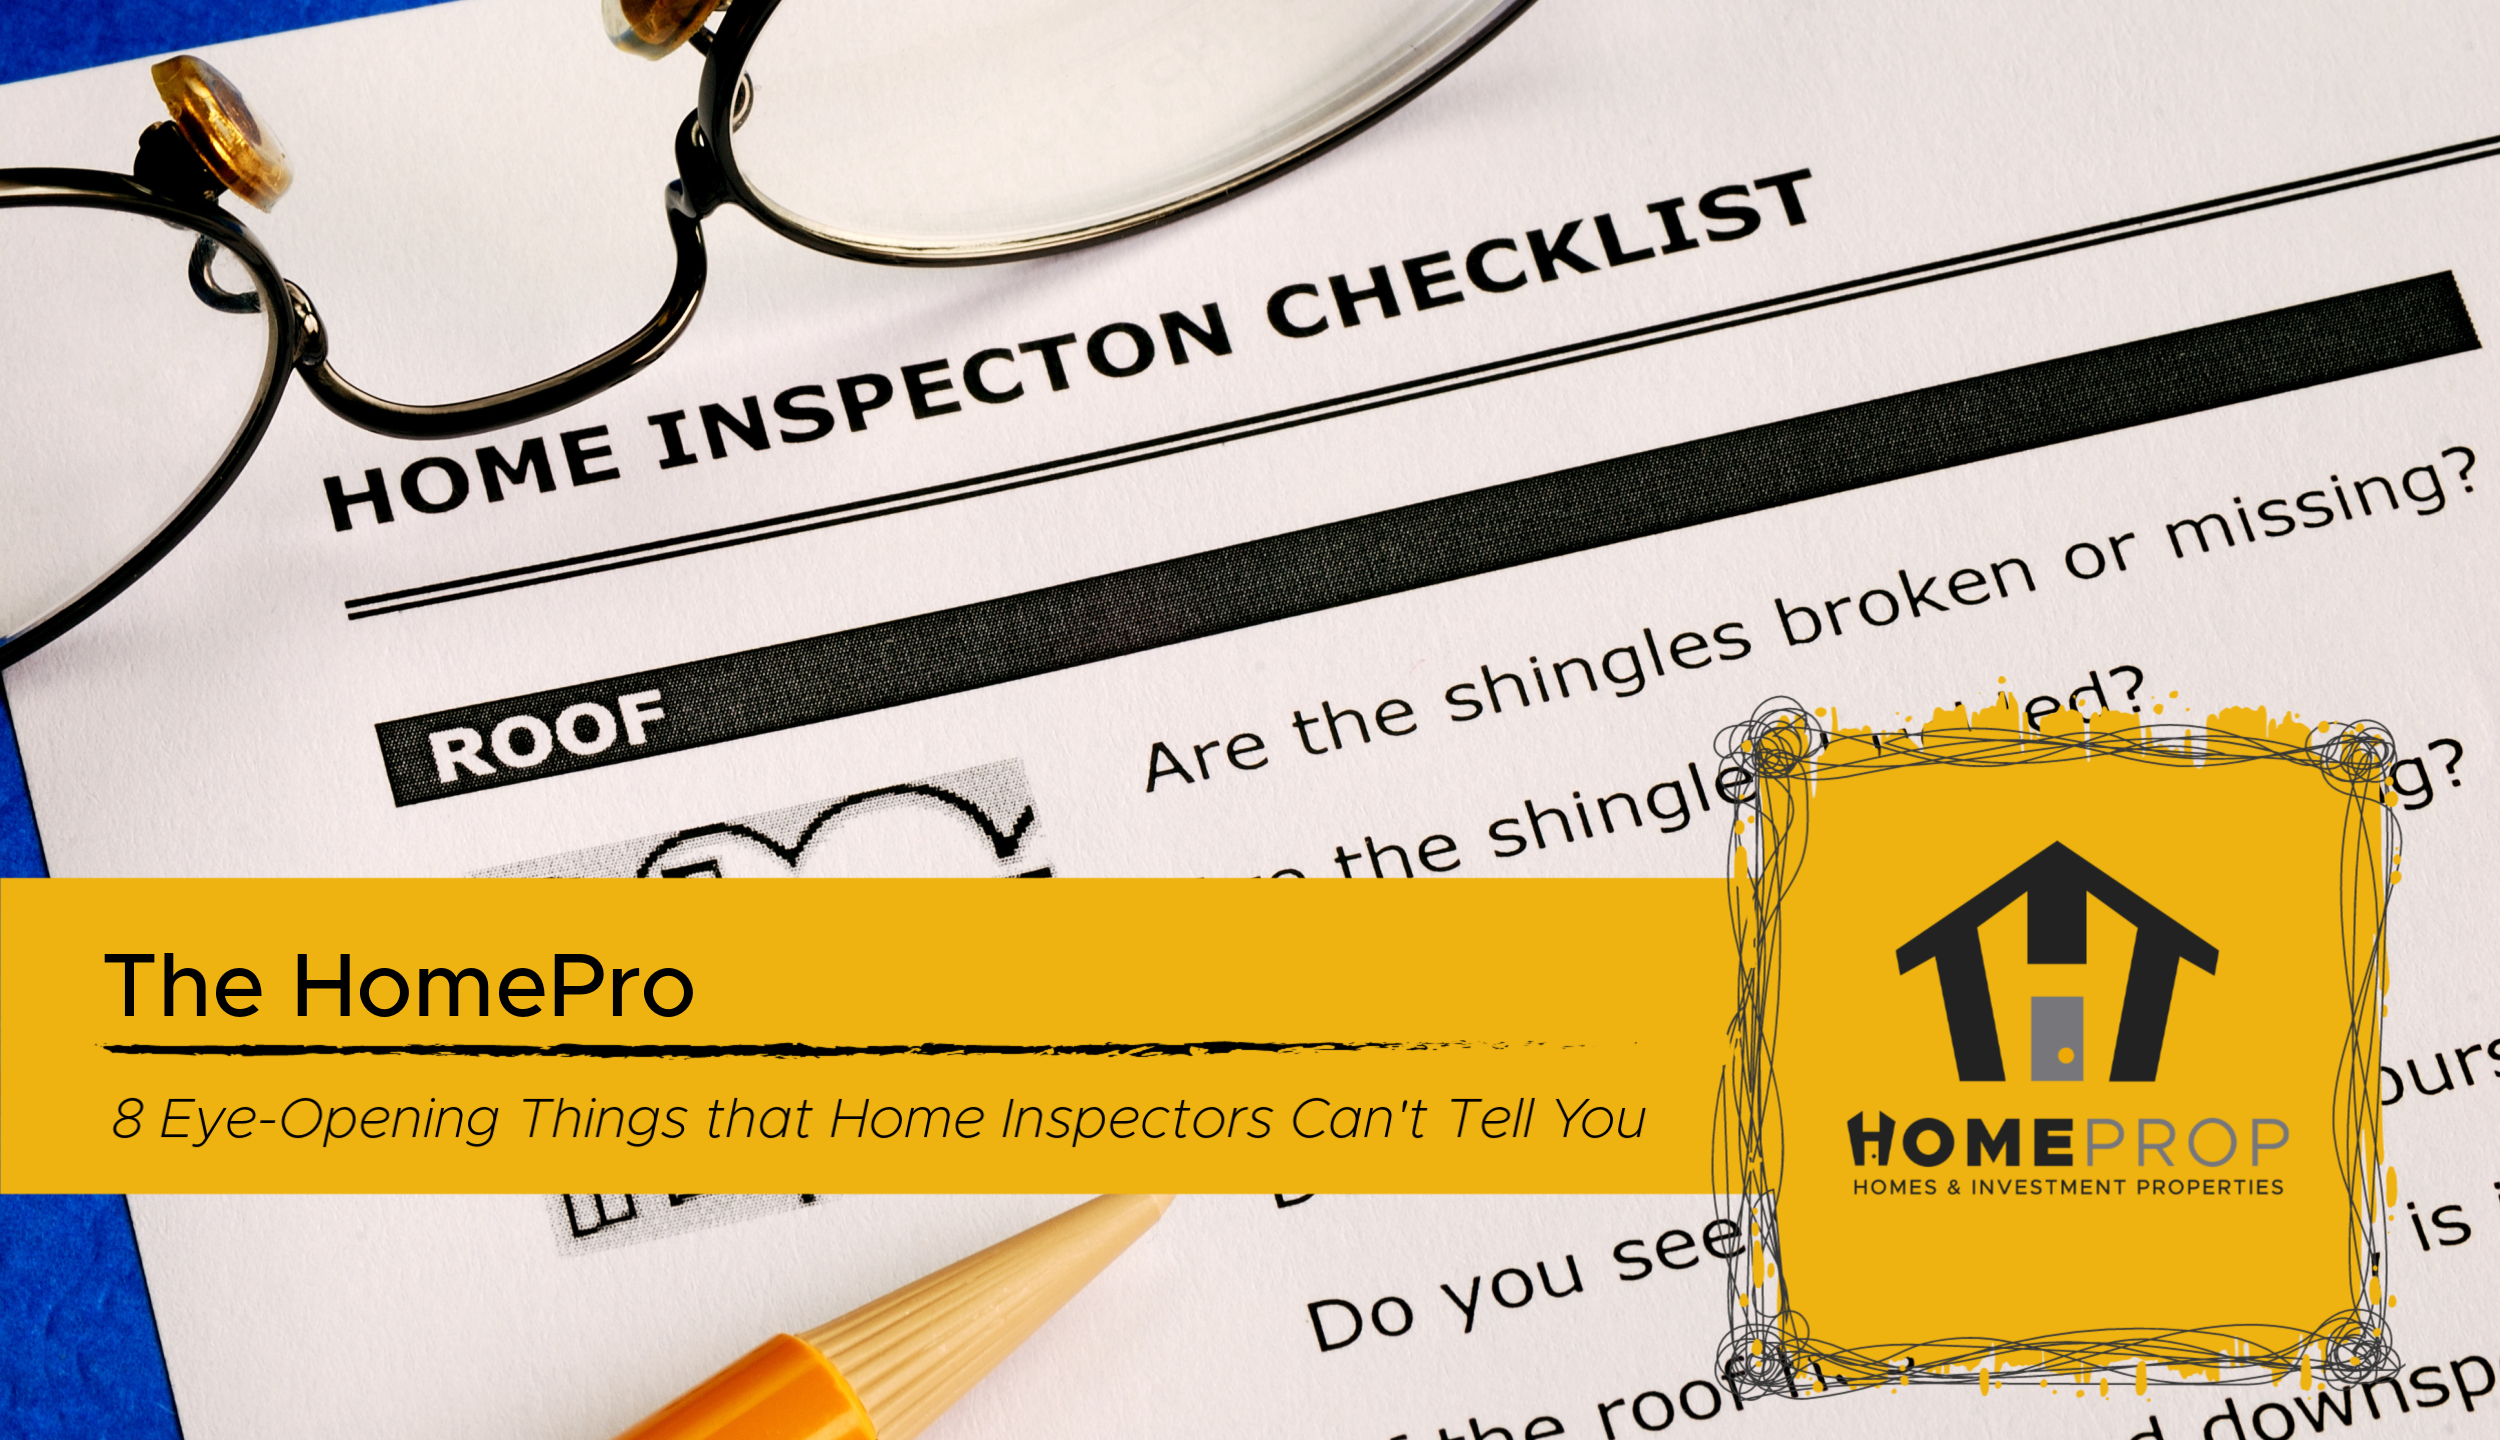 Things that Inspectors Can't Tell You